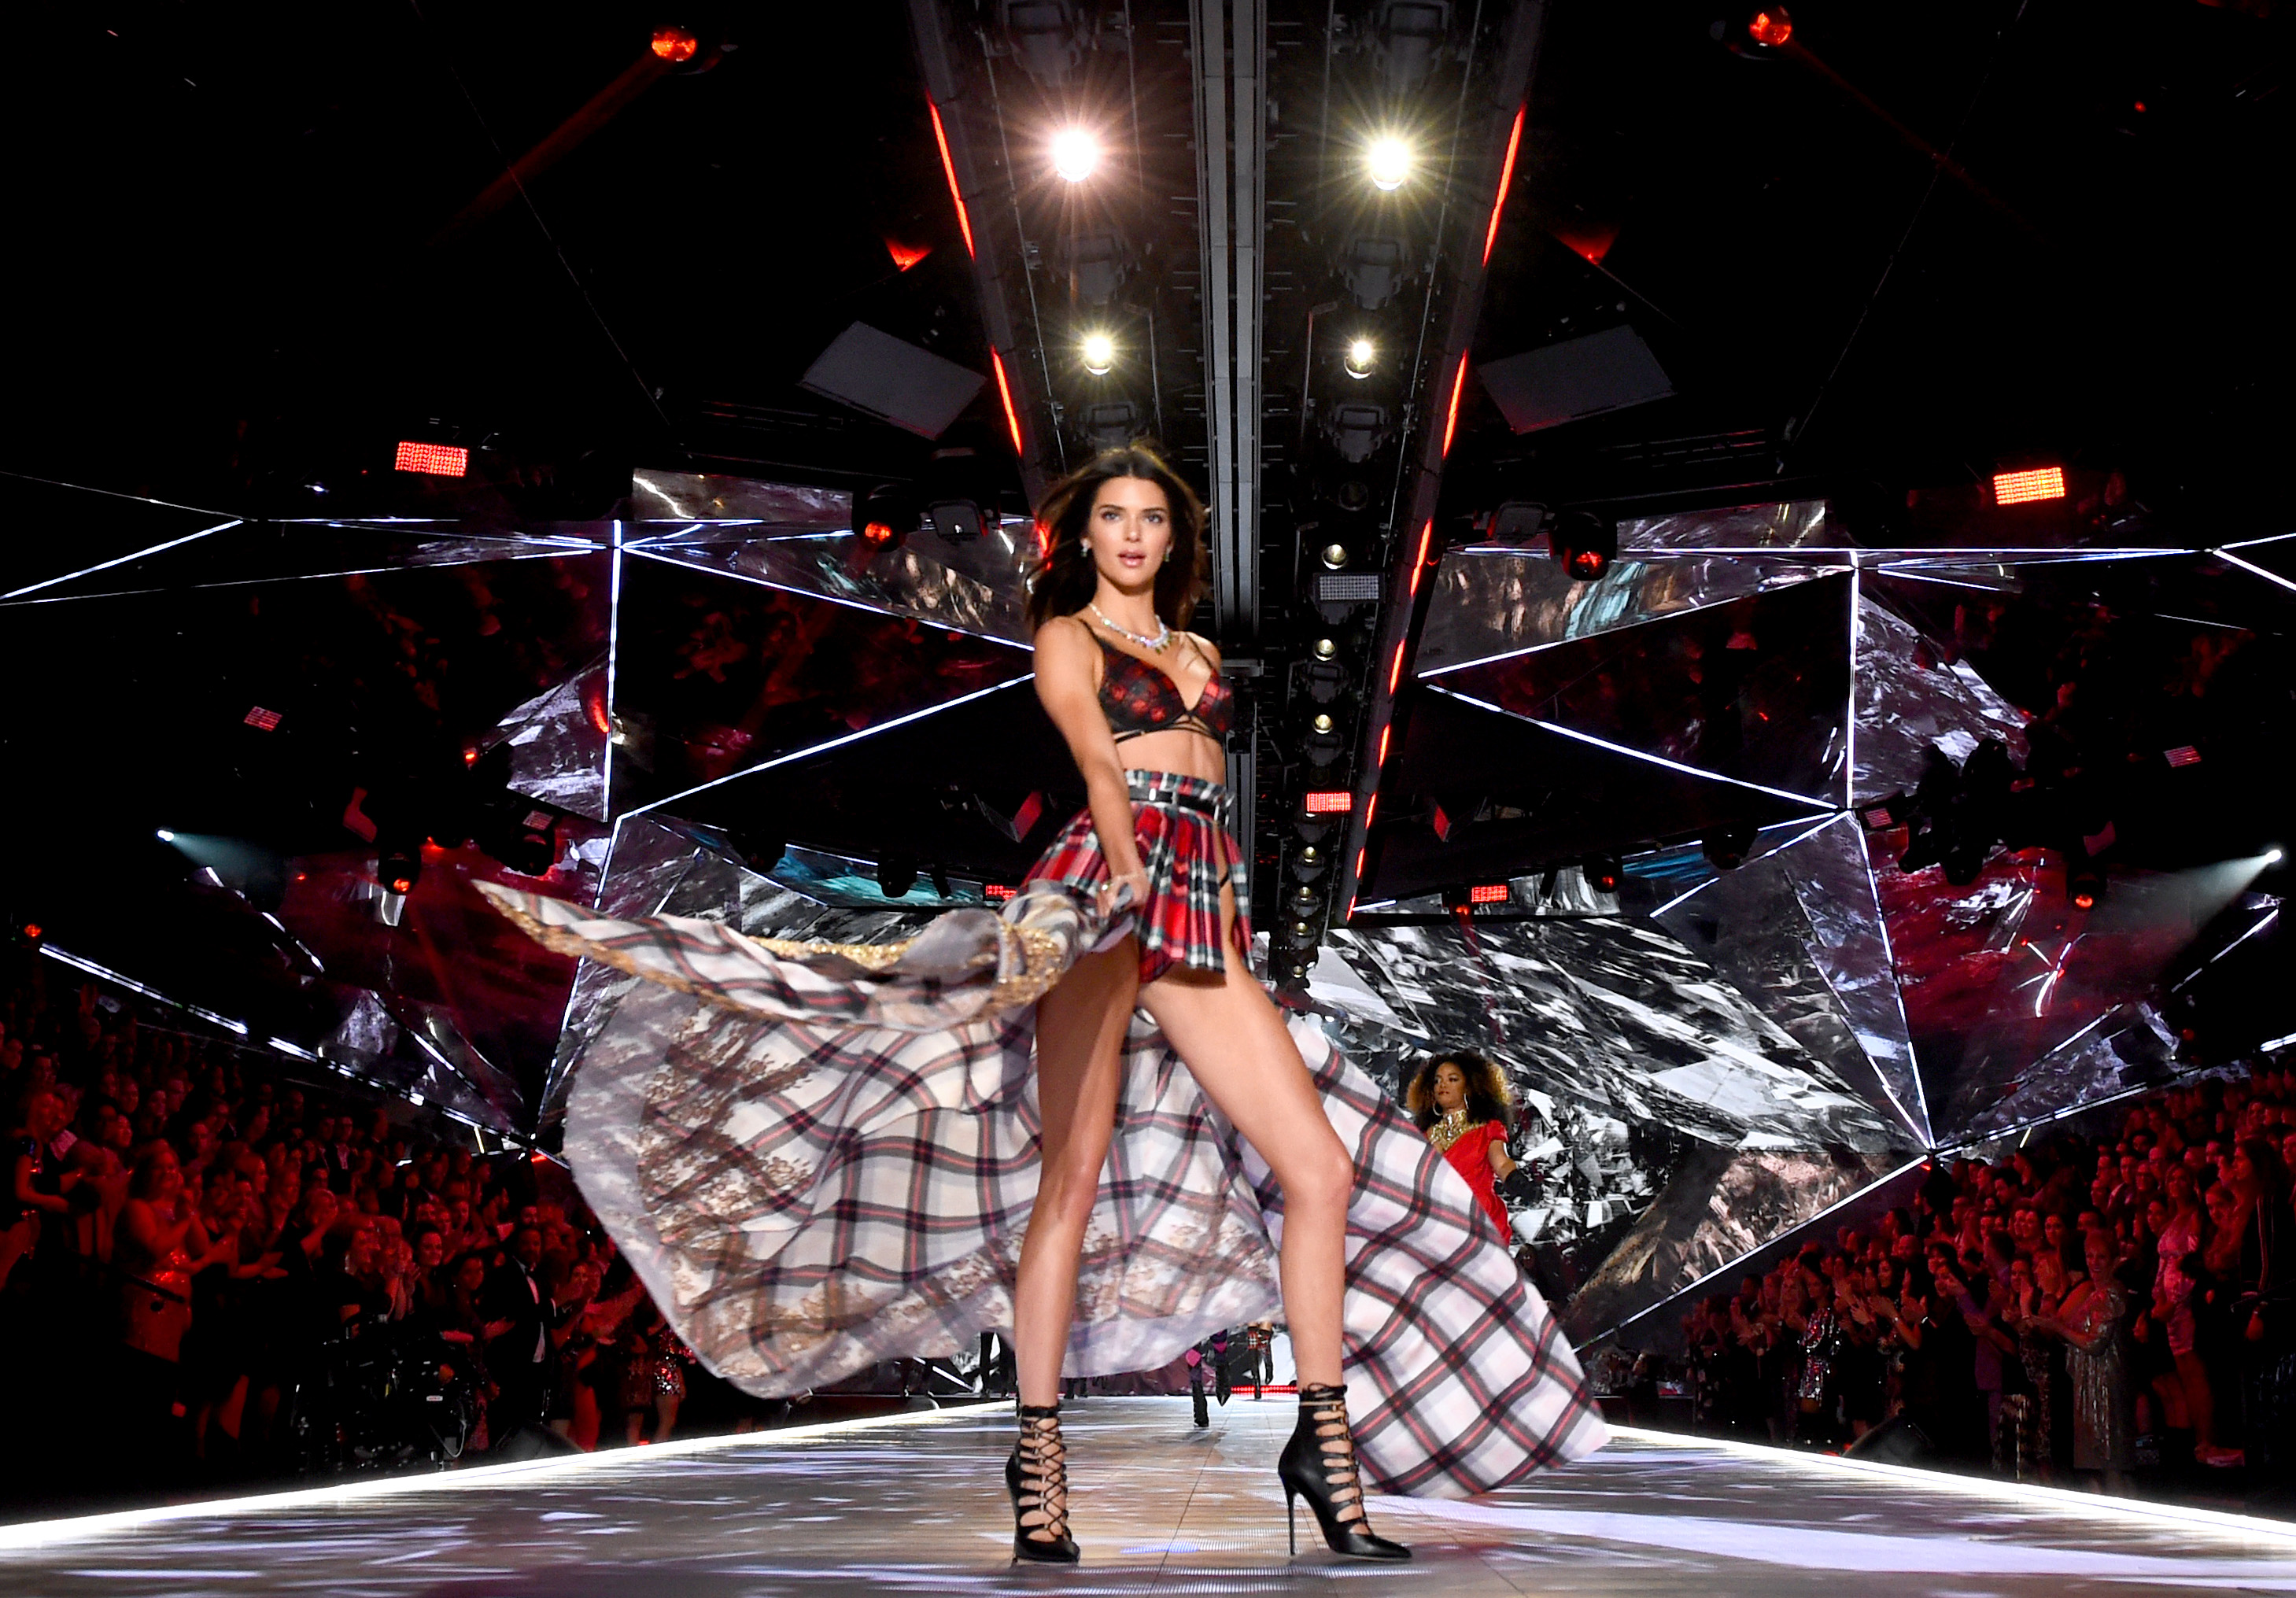 Kendall Jenner walks the runway during the 2018 Victoria's Secret Fashion Show at Pier 94 on November 8, 2018, in New York City. (Getty Images)